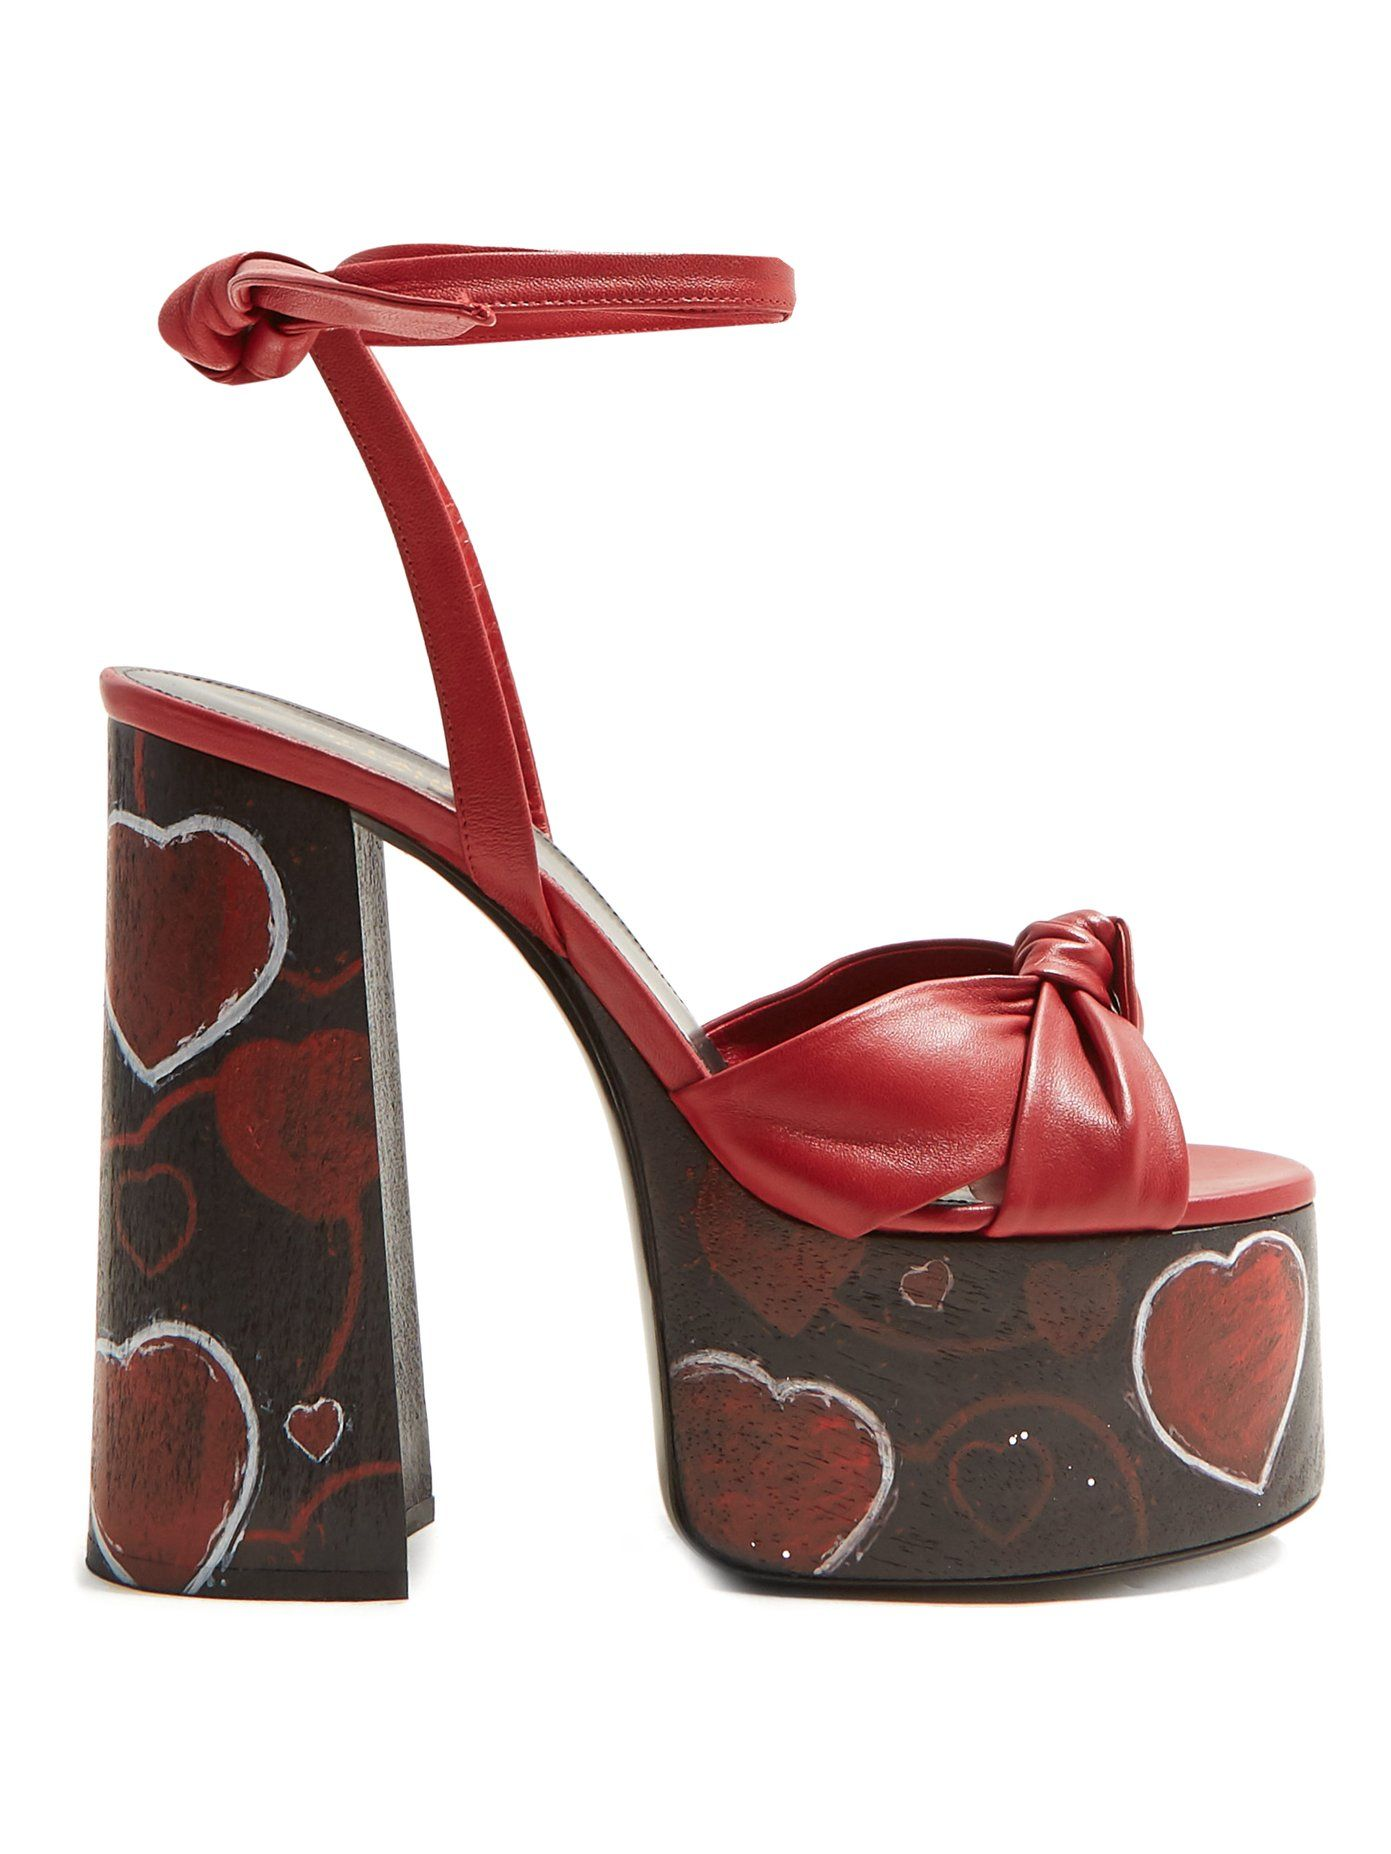 fa4a1f7f6 Paige heart-print platform leather sandals | Saint Laurent | Shoes ...